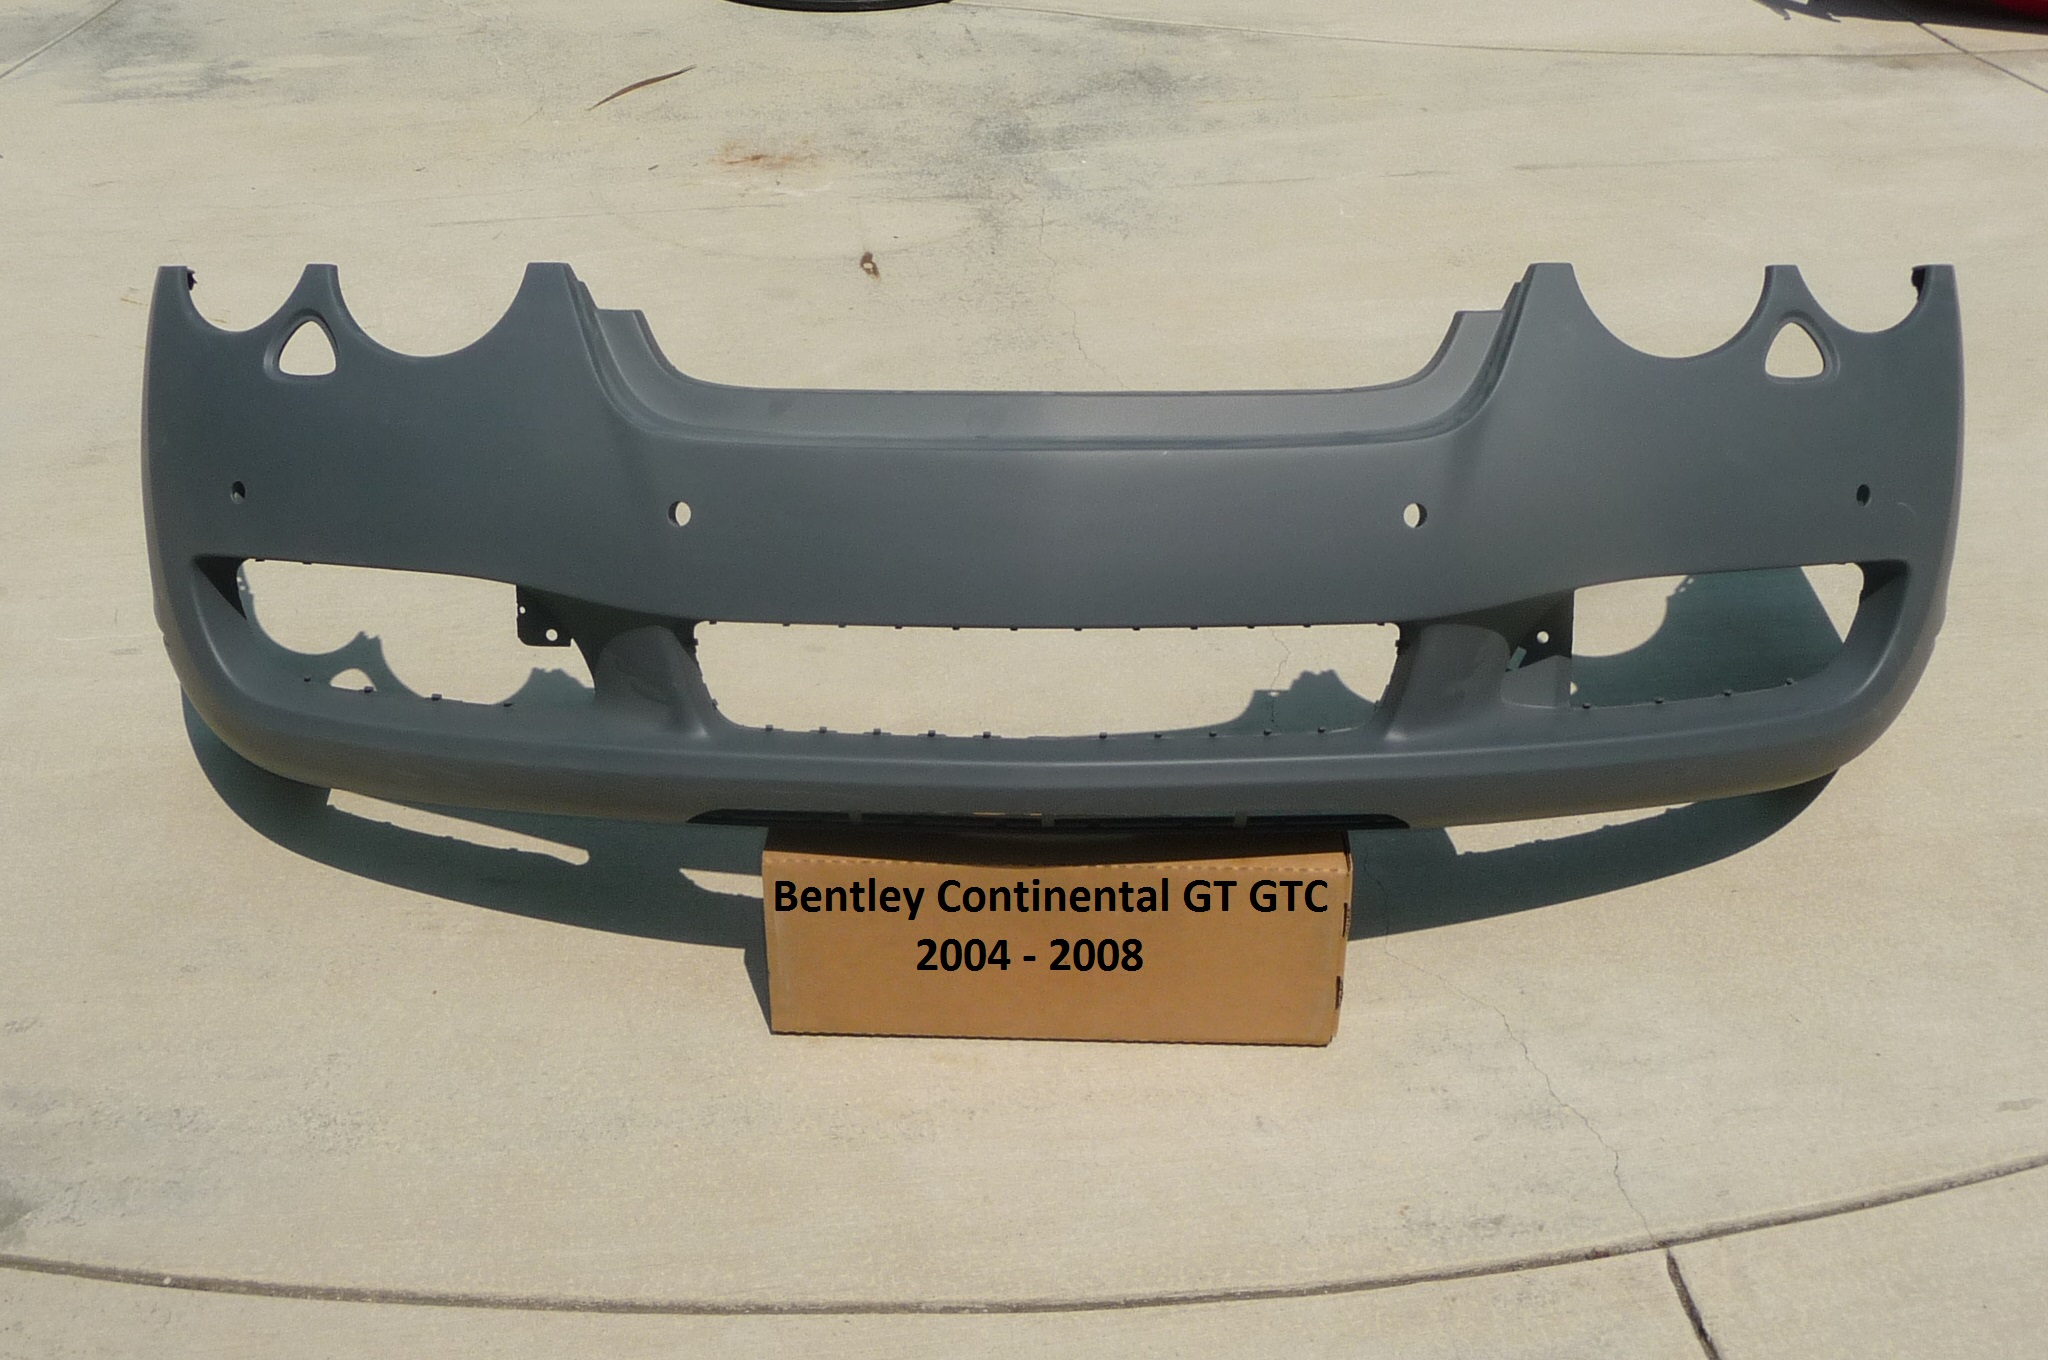 Bentley Continental GT GTC Coupe Convertible Front Bumper Cover 3W8807221 - Used Auto Parts Store | LA Global Parts